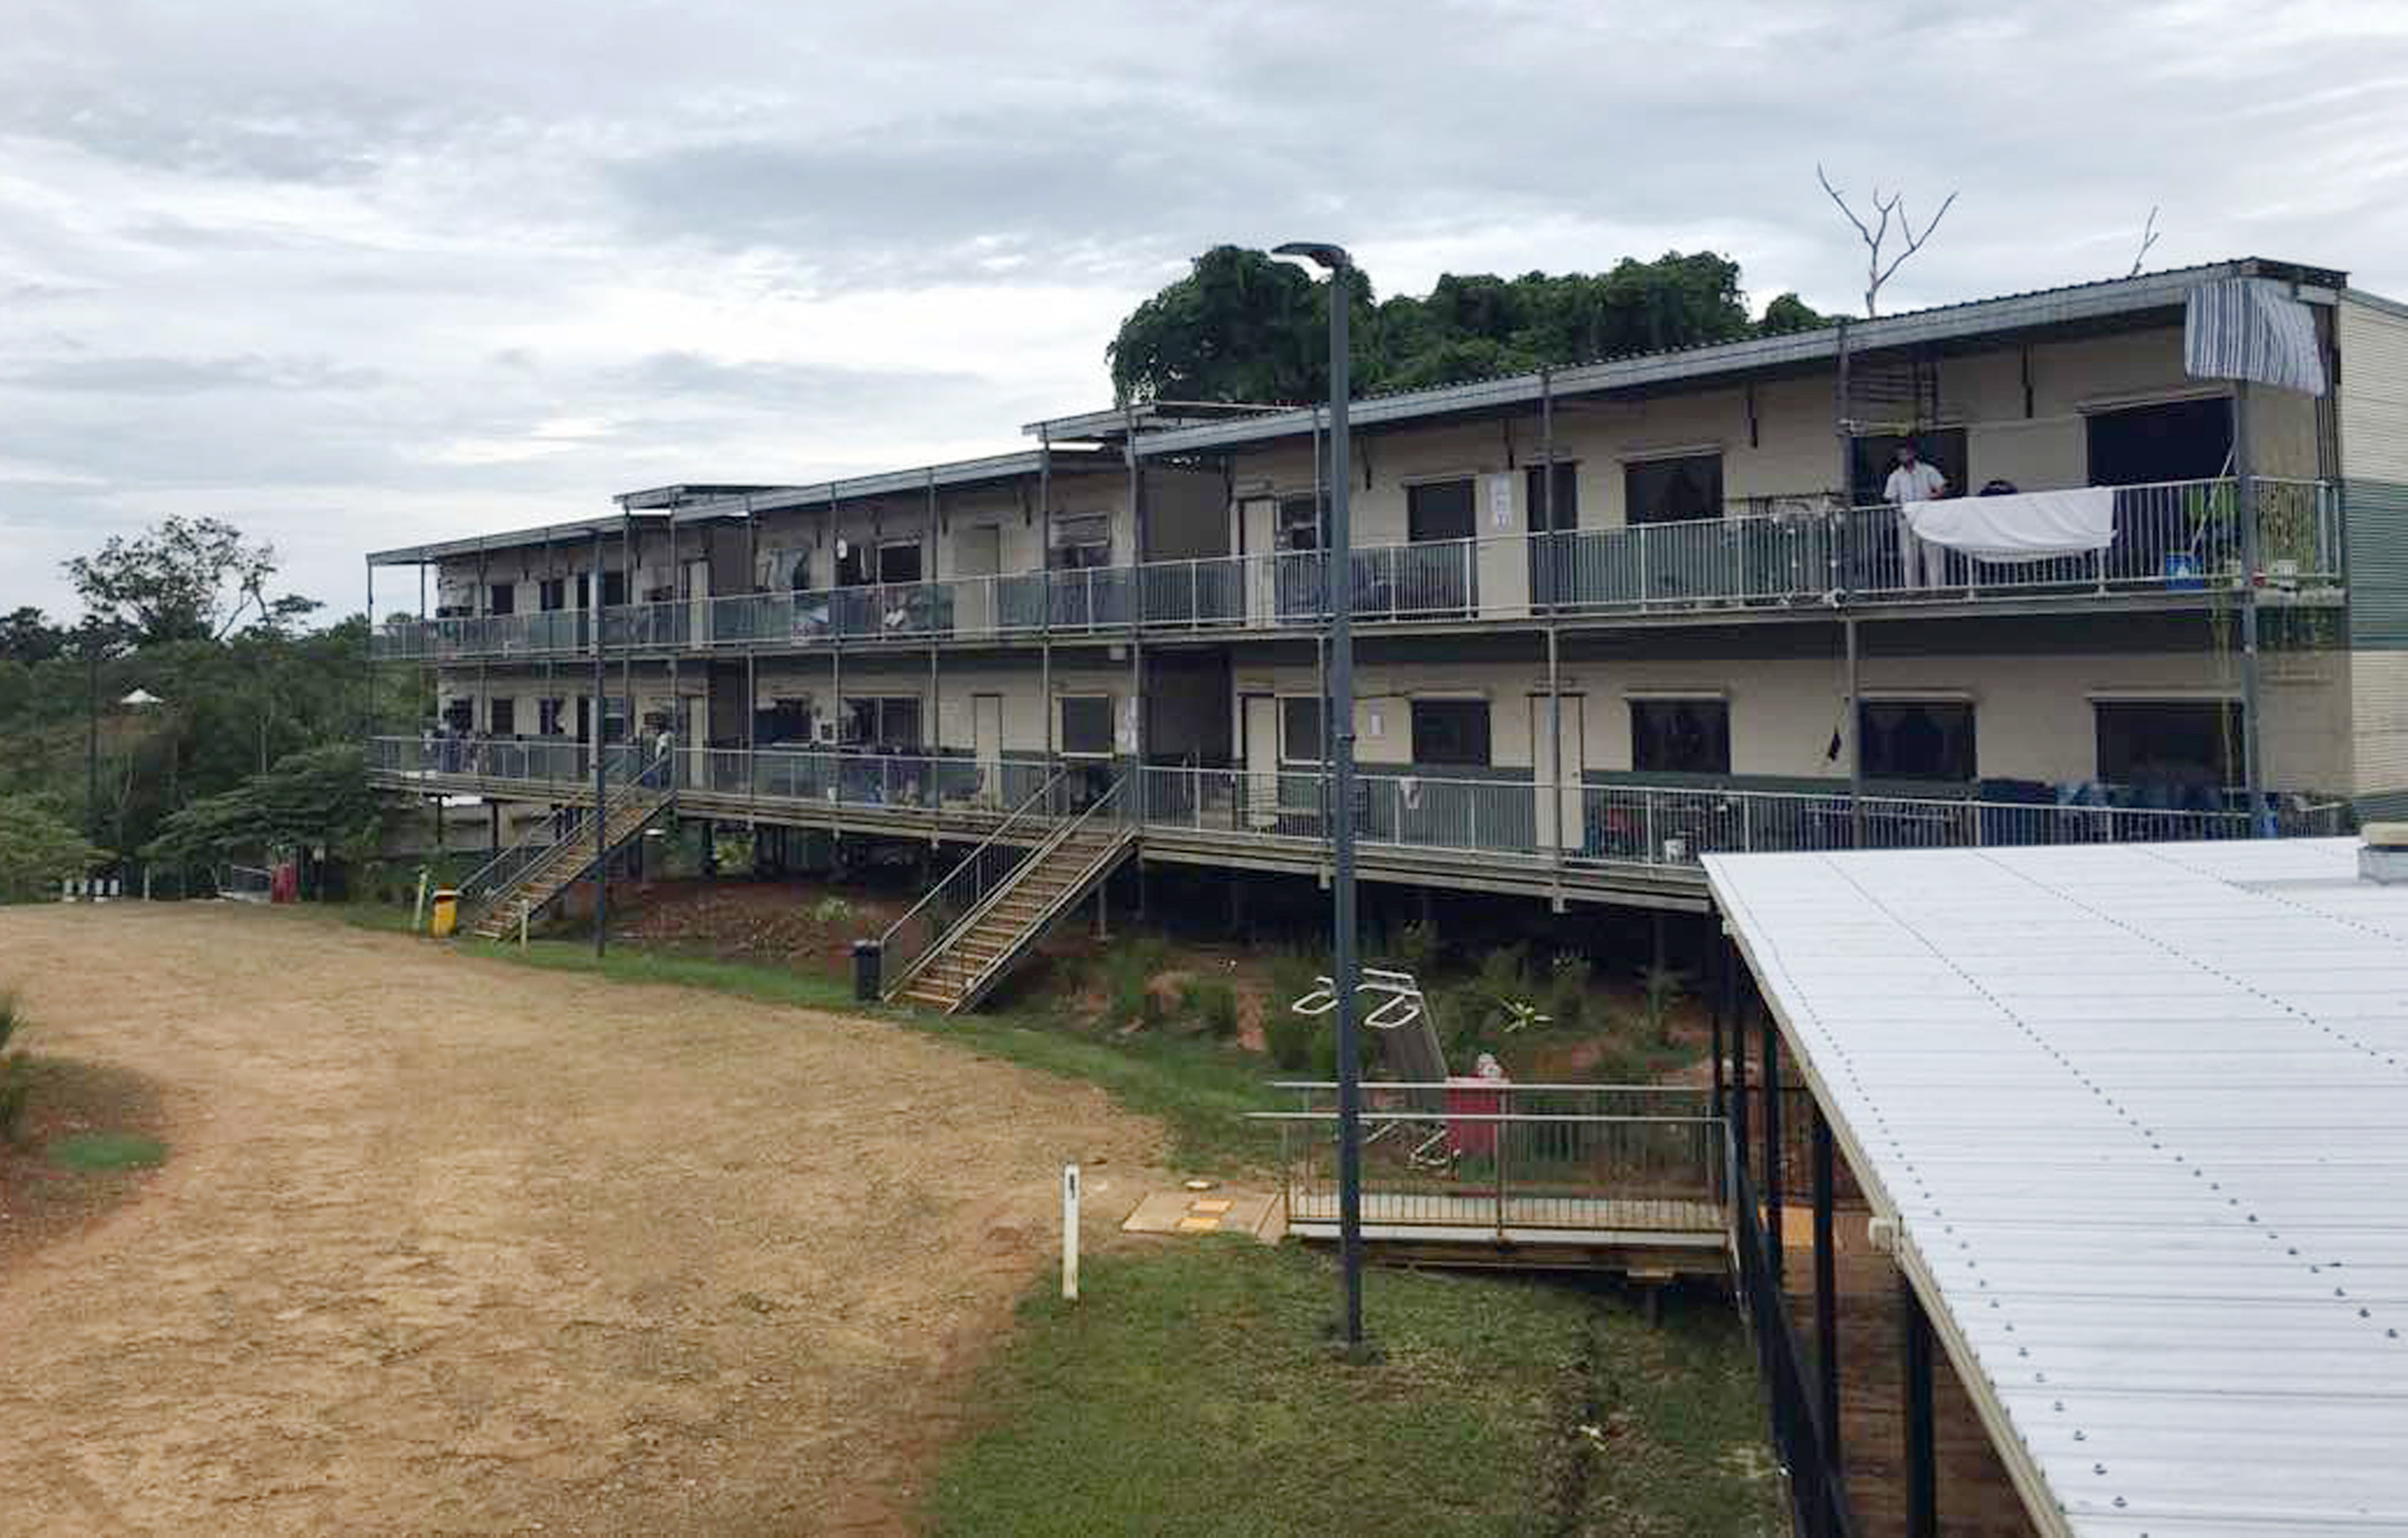 A man standing on a balcony at the East Lorengau Refugee Transit Center on Manus Island, Papua New Guinea on July 17, 2018.